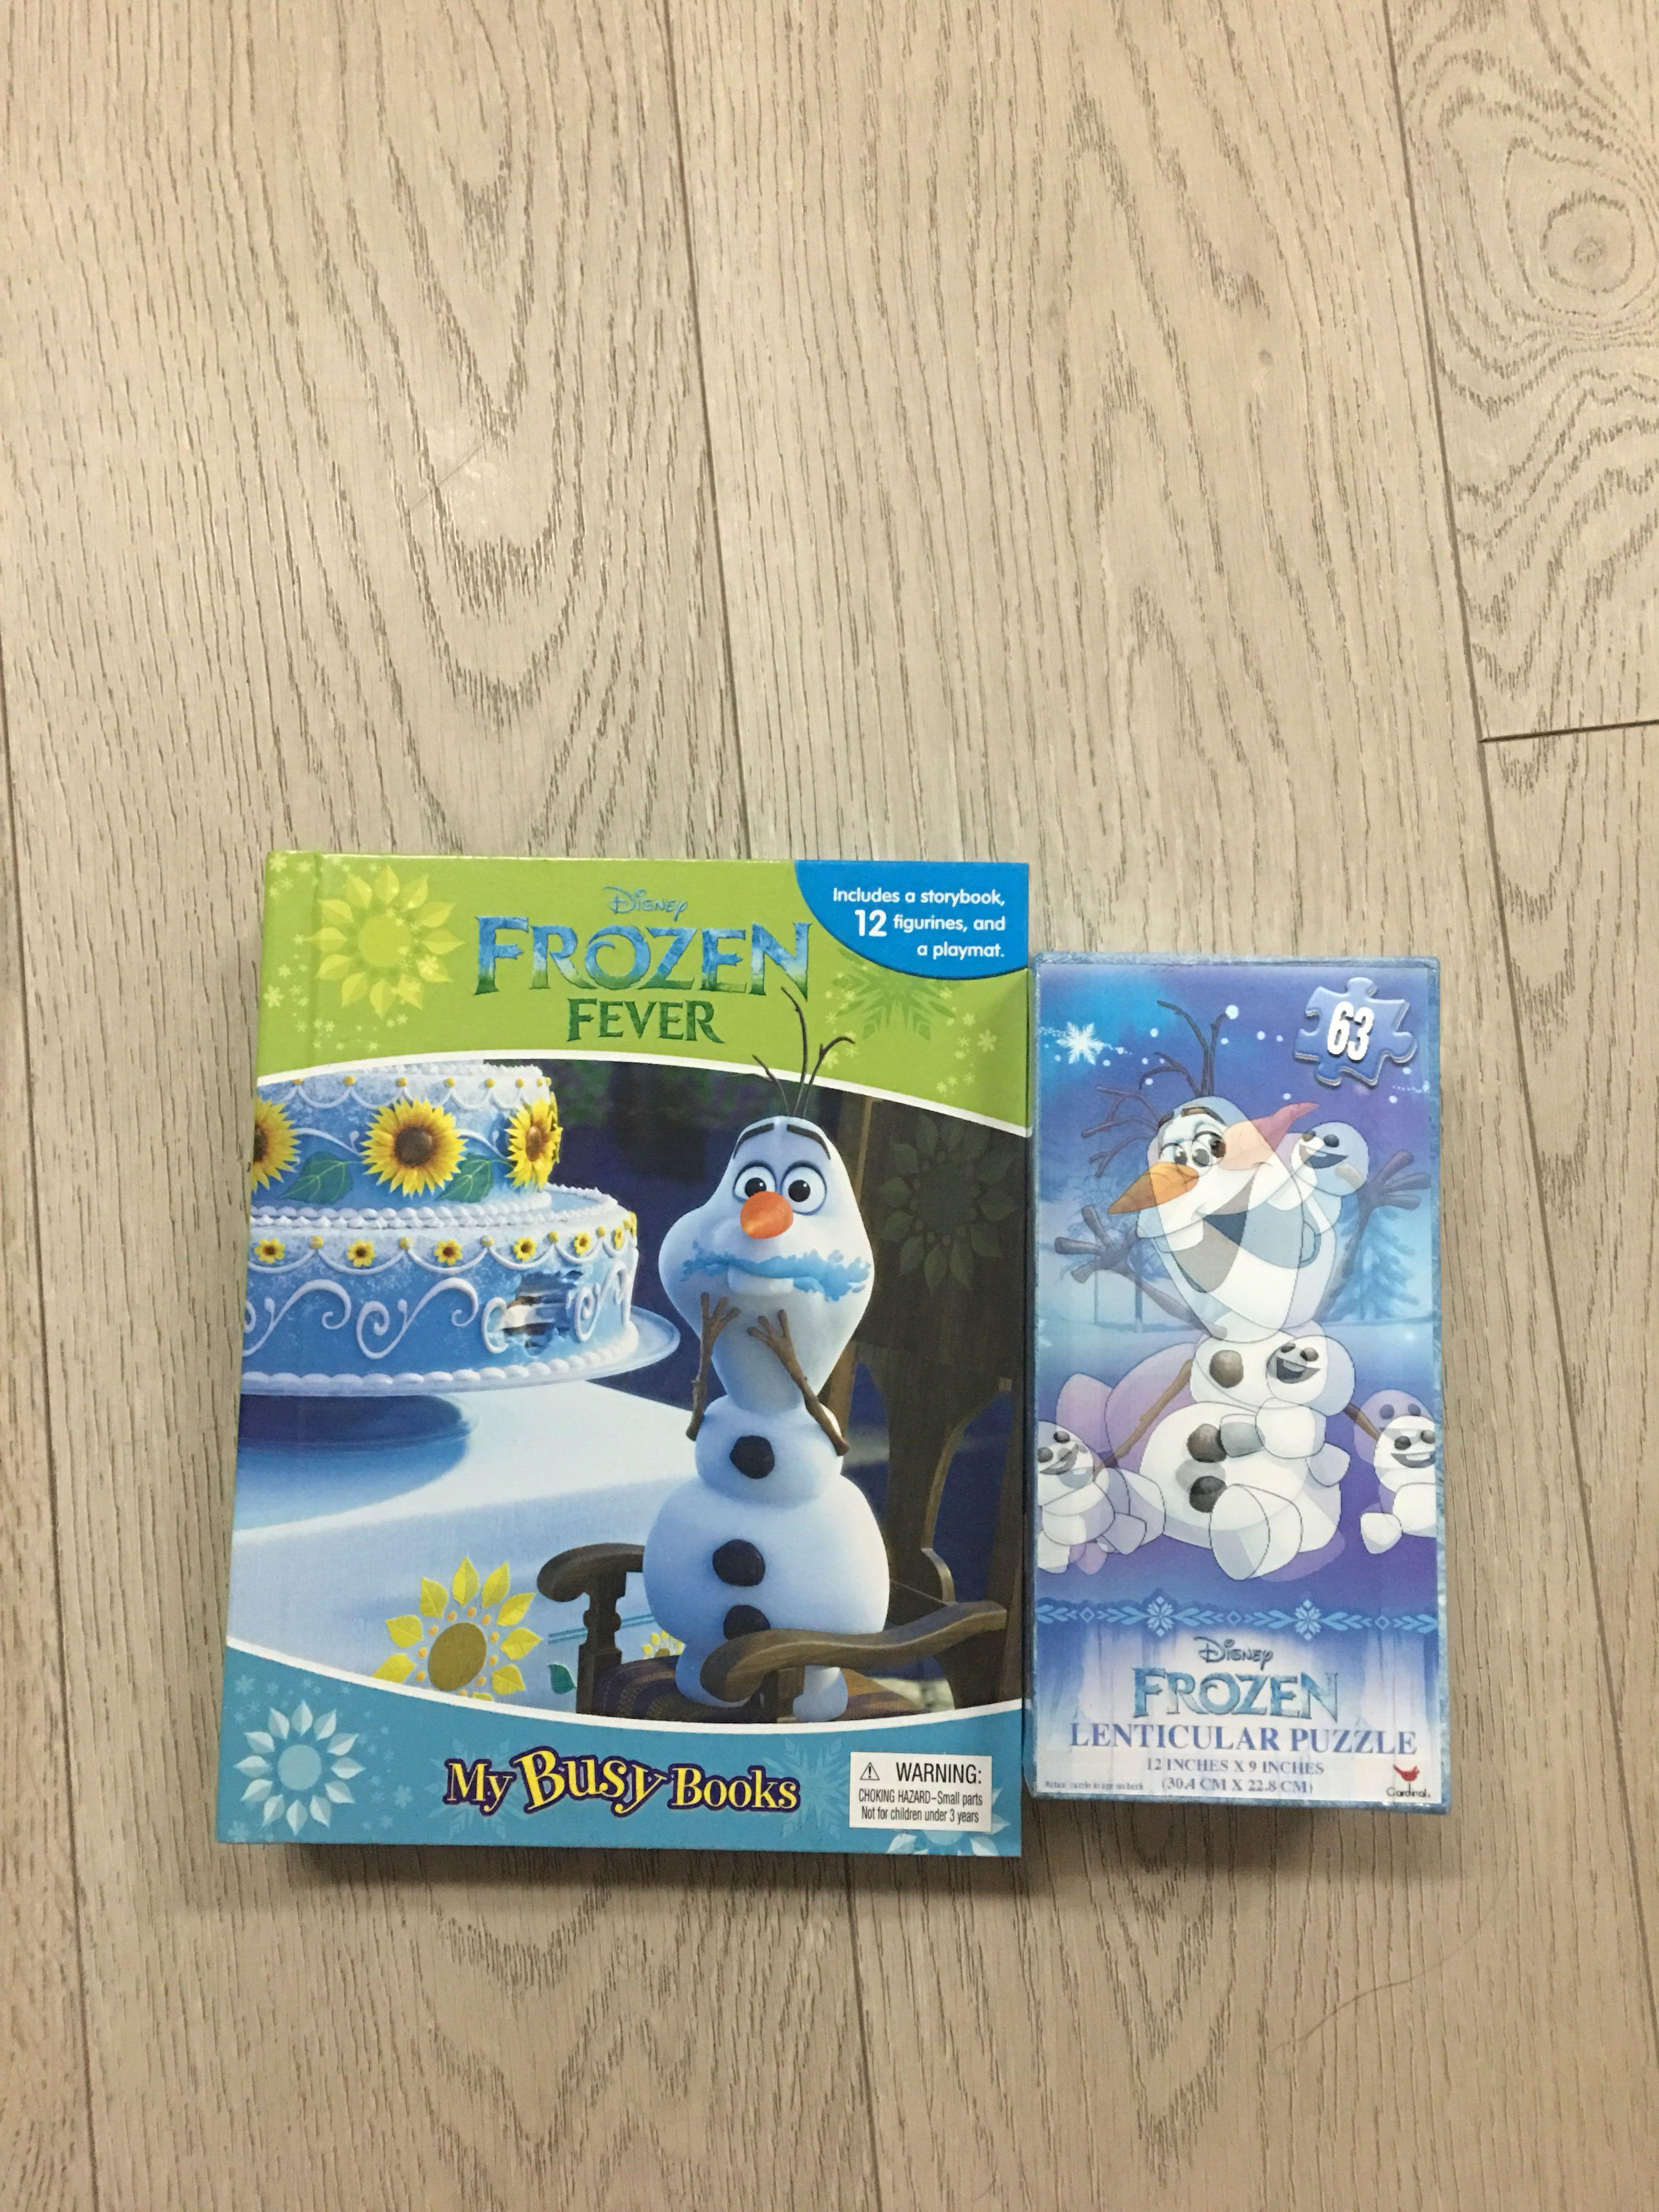 Frozen Christmas Special.Busy Book Christmas Special Frozen Fever Disney And Frozen